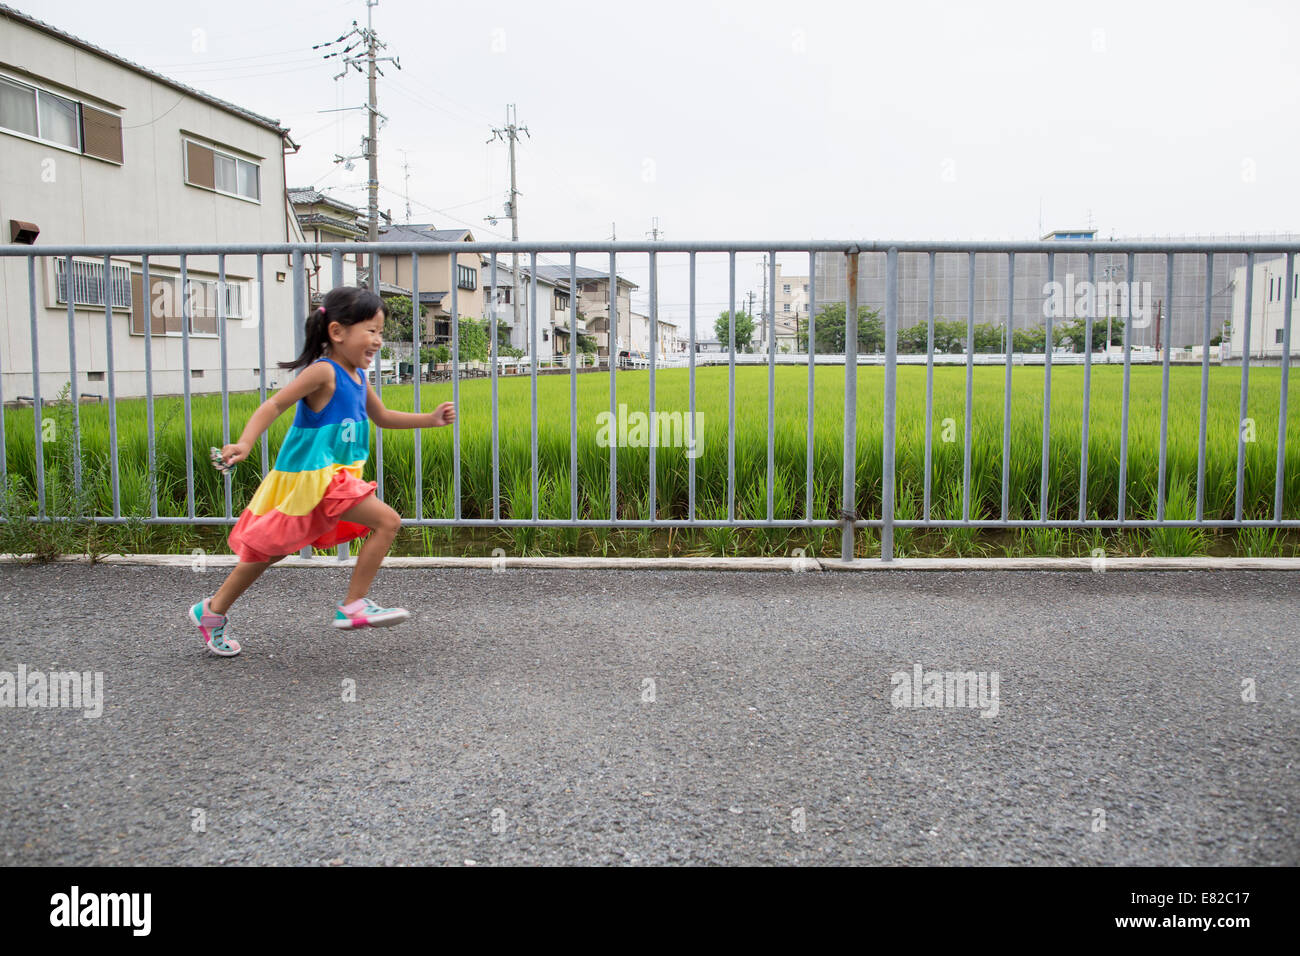 A young girl running along a footpath. - Stock Image